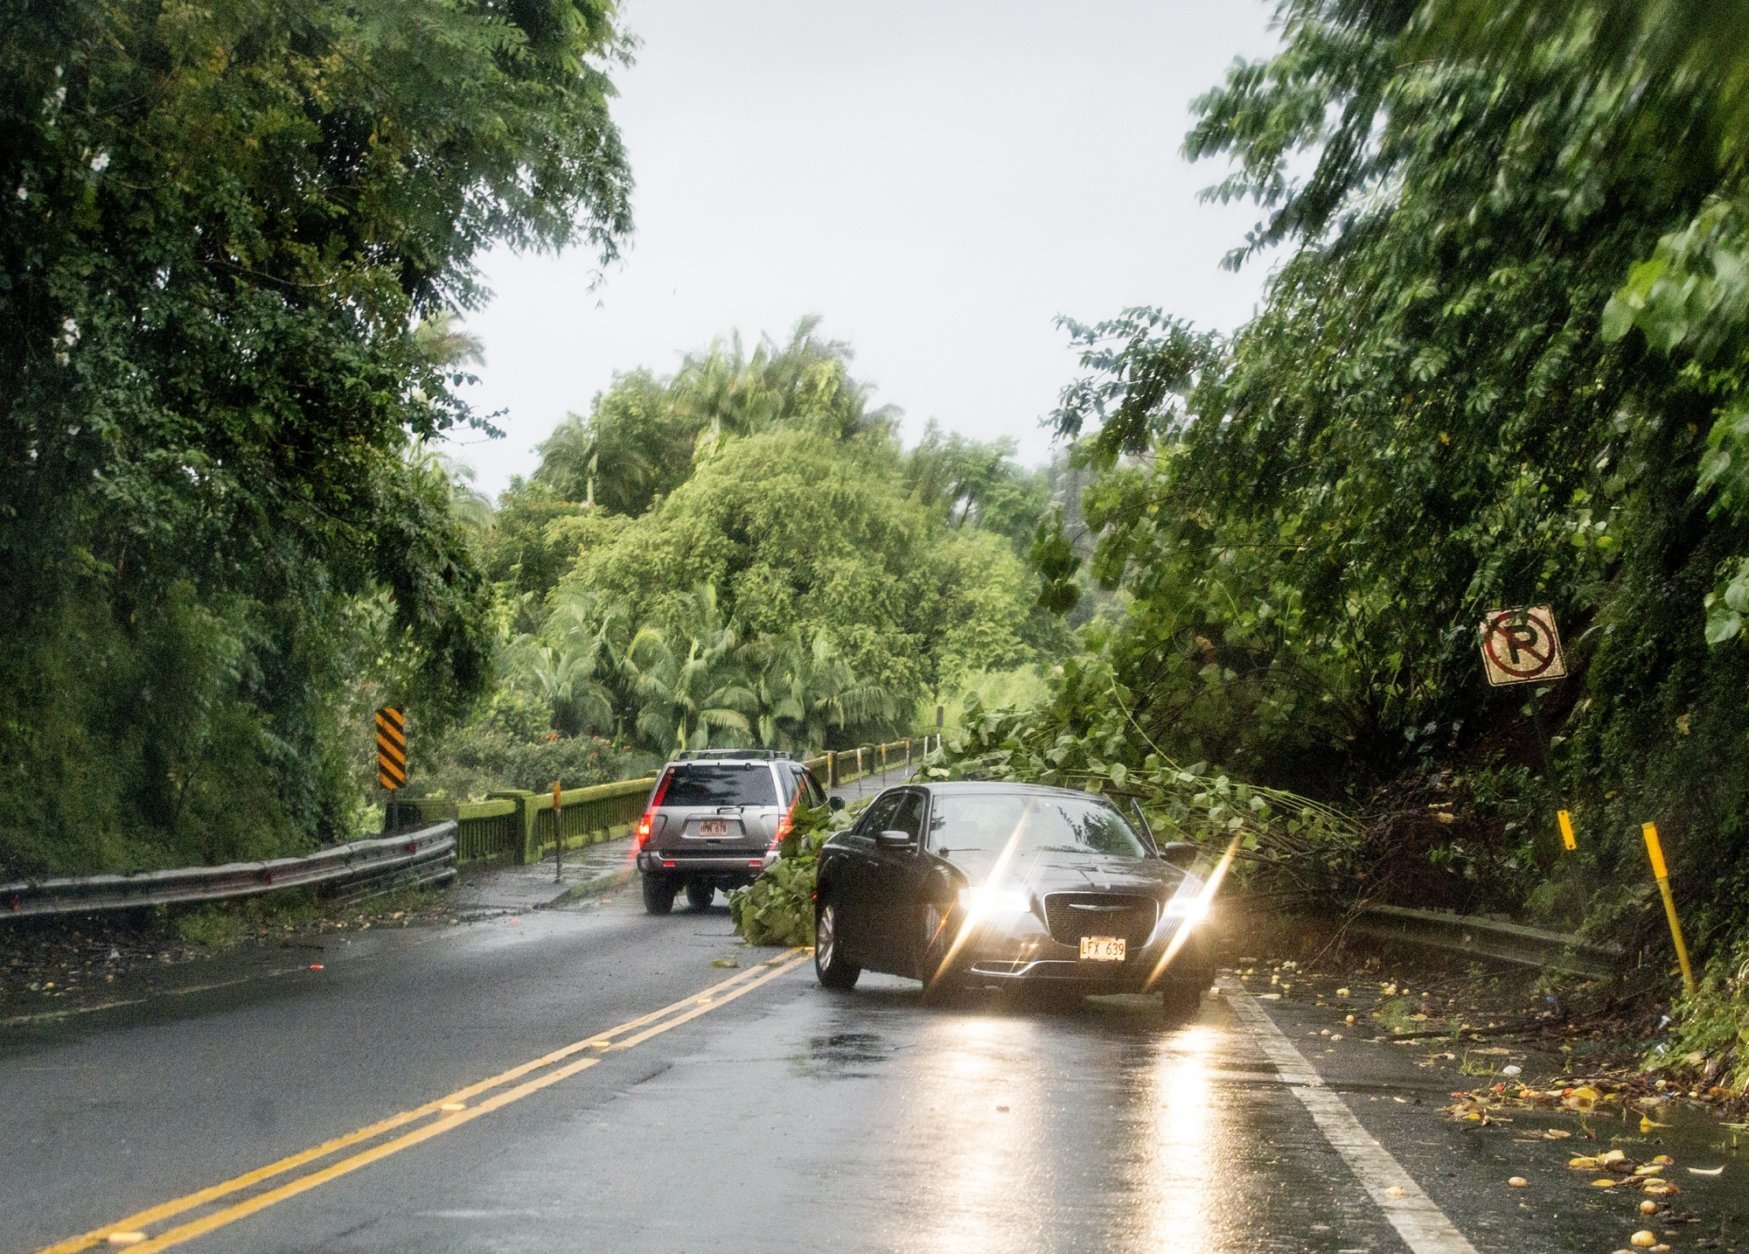 A landslide from heavy rains blocks the Hilo bound lane at the Honolii bridge on Highway 19 Thursday, Aug. 23, 2018, in Hilo, Hawaii. Hurricane Lane soaked Hawaii's Big Island on Thursday, dumping nearly 20 inches of rain in nearly 24 hours as residents stocked up on supplies and tried to protect their homes ahead of the state's first hurricane since 1992. (Hollyn Johnson/Hawaii Tribune-Herald via AP)